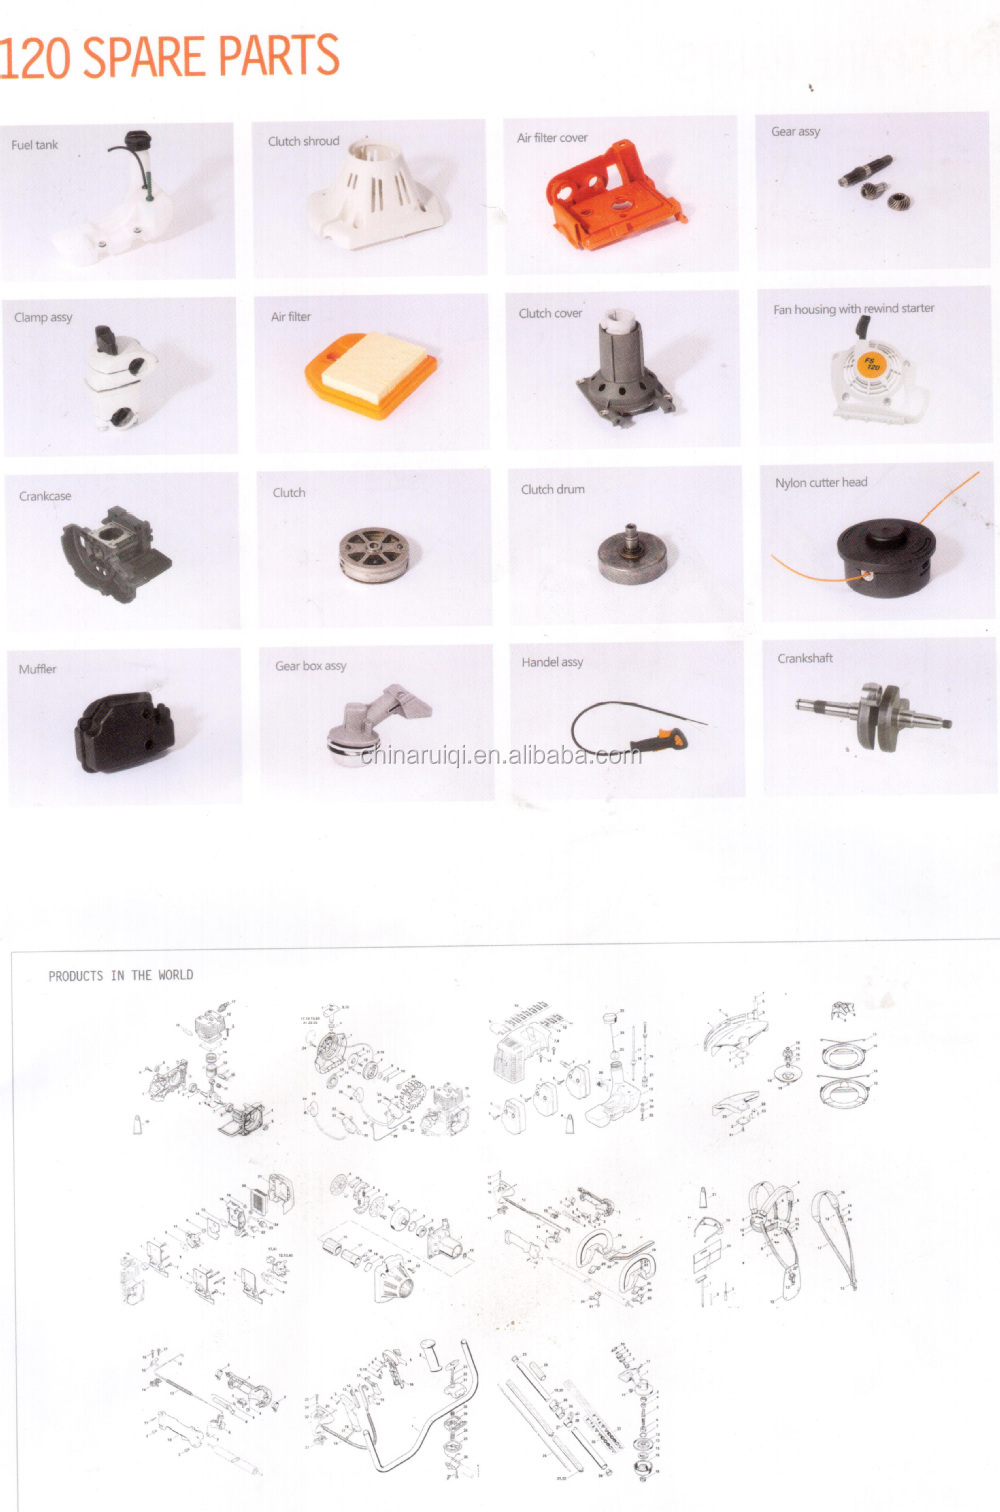 72.2cc 3.6KW 038 380 381 Chainsaw Crankshaft of MS381 MS380 MS038 Chainsaw Spare Parts